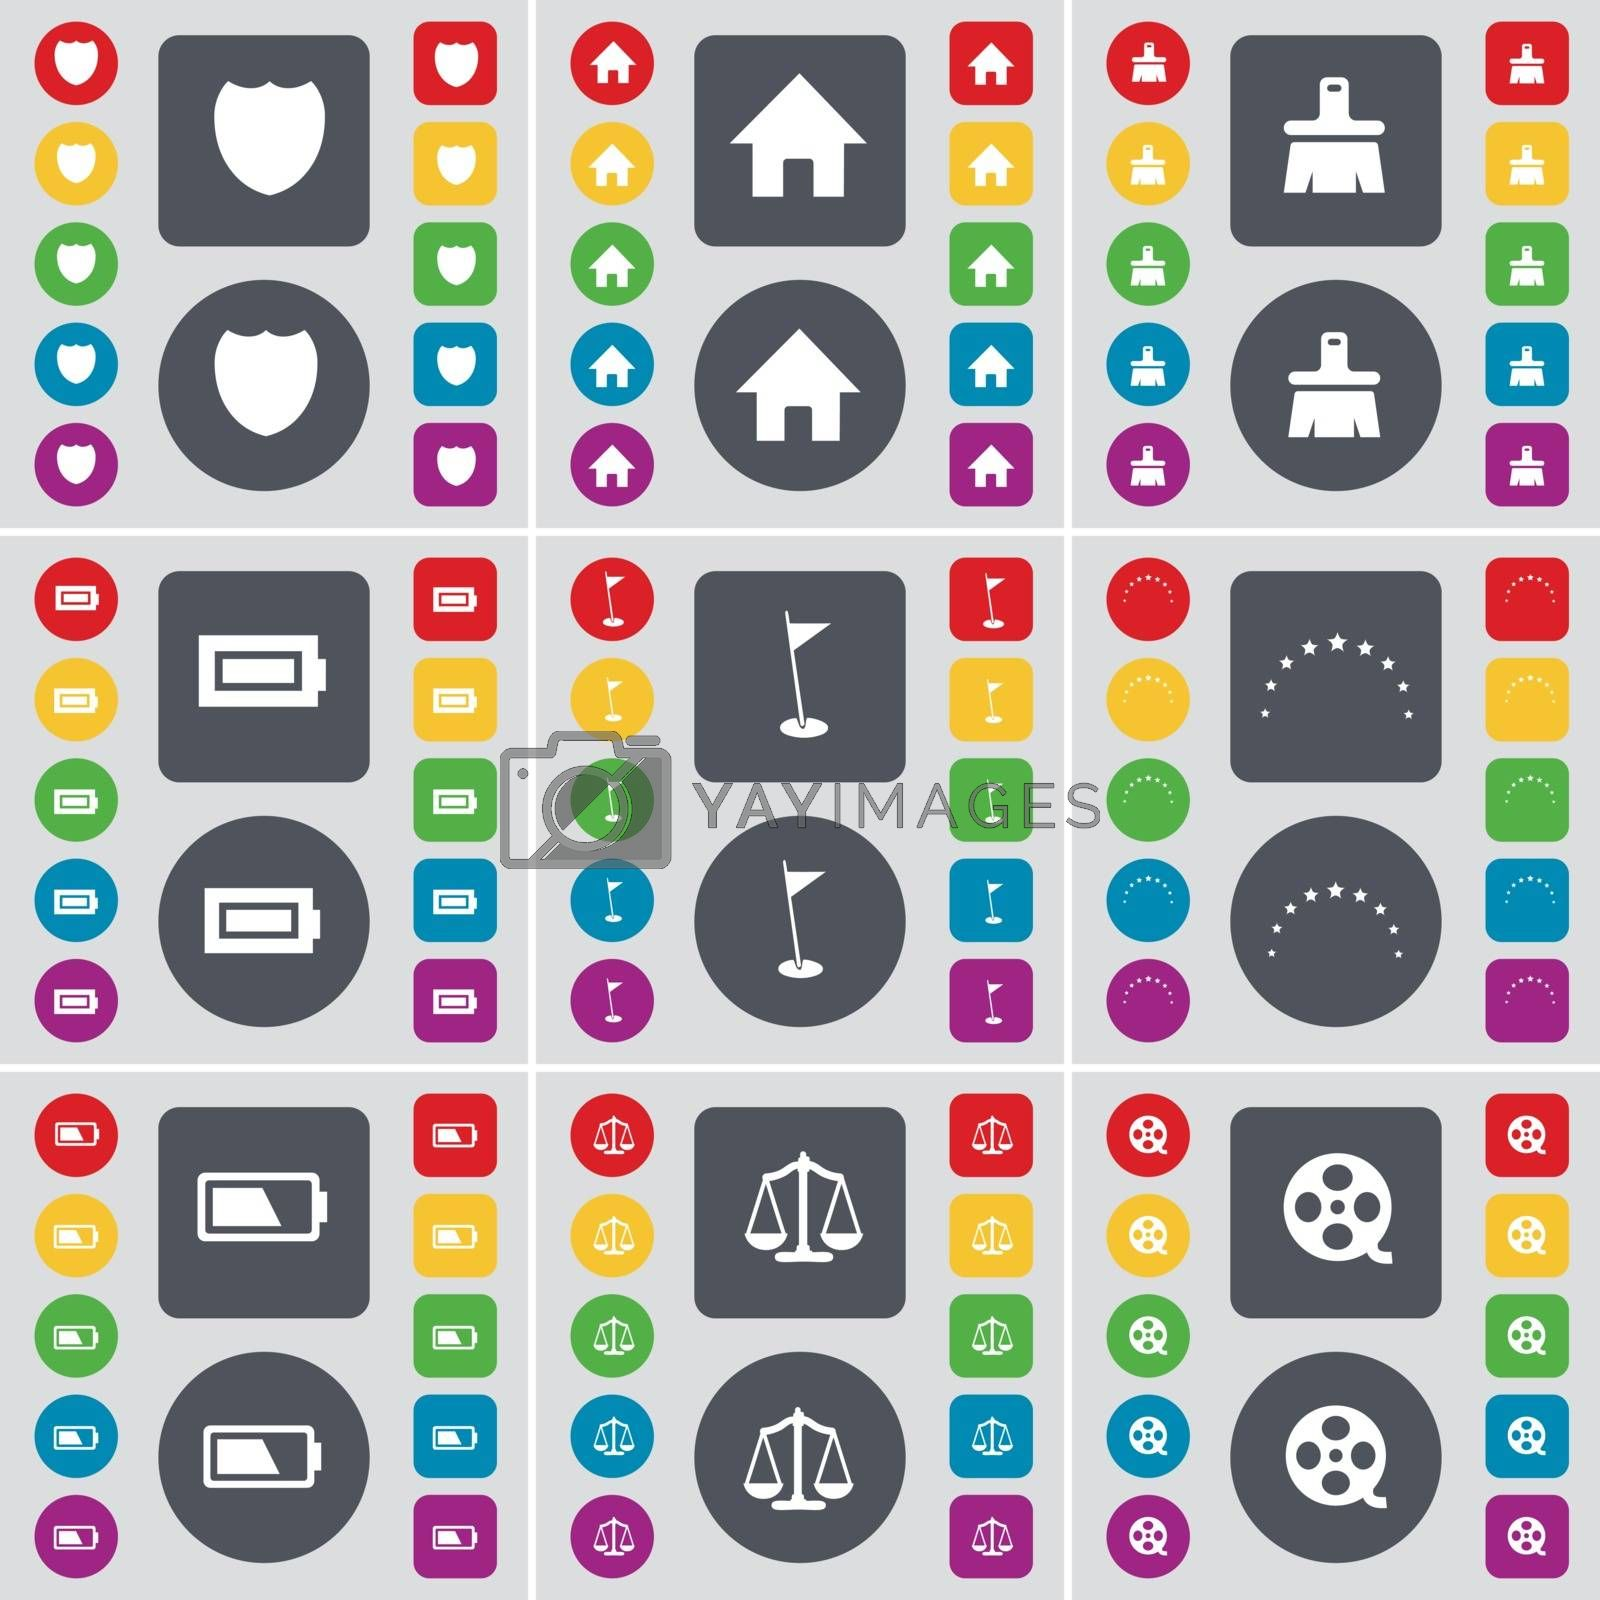 Royalty free image of Badge, House, Brush, Battery, Golf hole, Stars, Scales, Videotape icon symbol. A large set of flat, colored buttons for your design. Vector by serhii_lohvyniuk